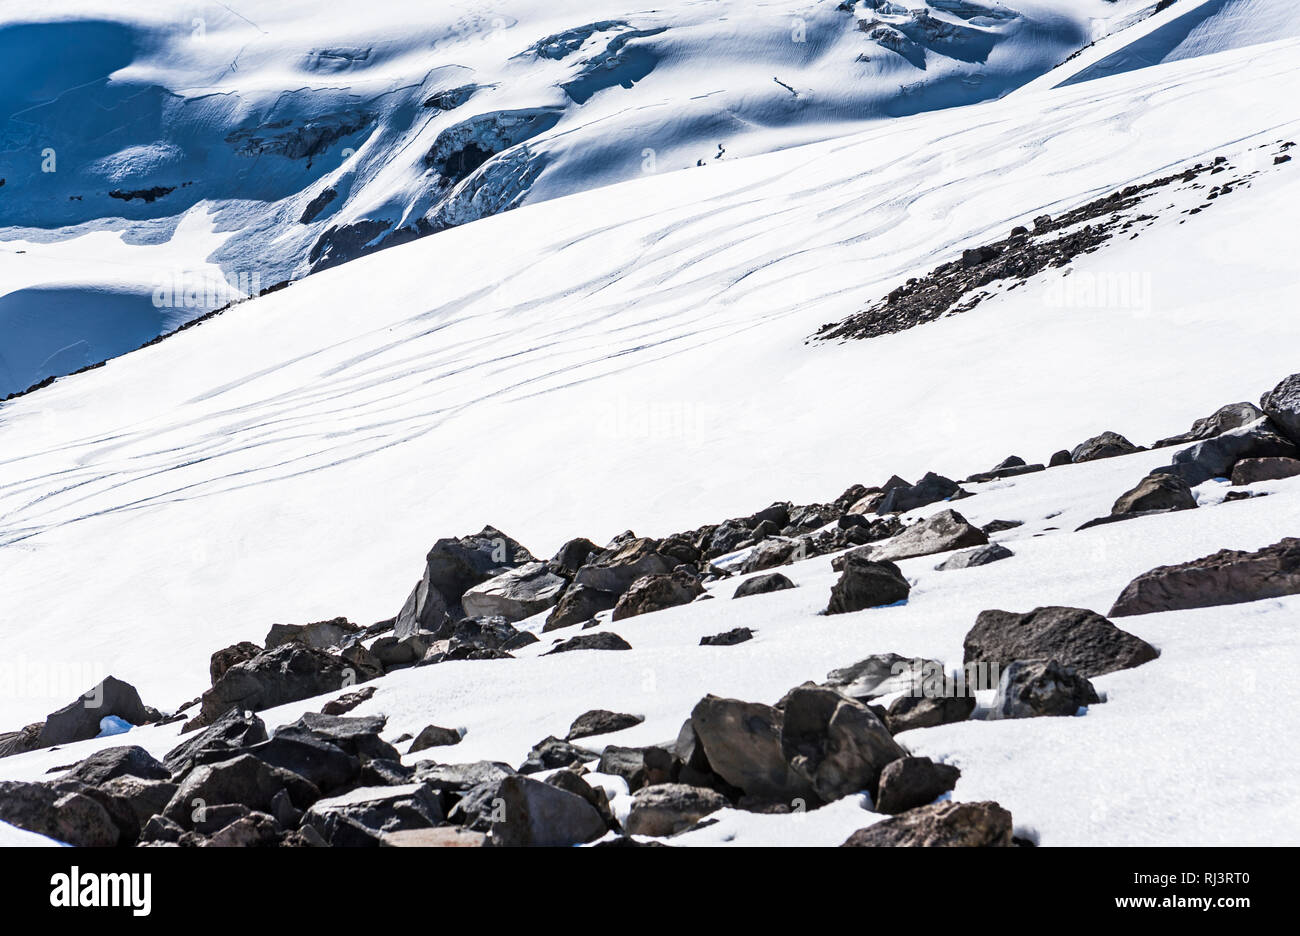 Melting snow revealing rocks on Mt. Rainier.  Ski tracks in the distance. - Stock Image